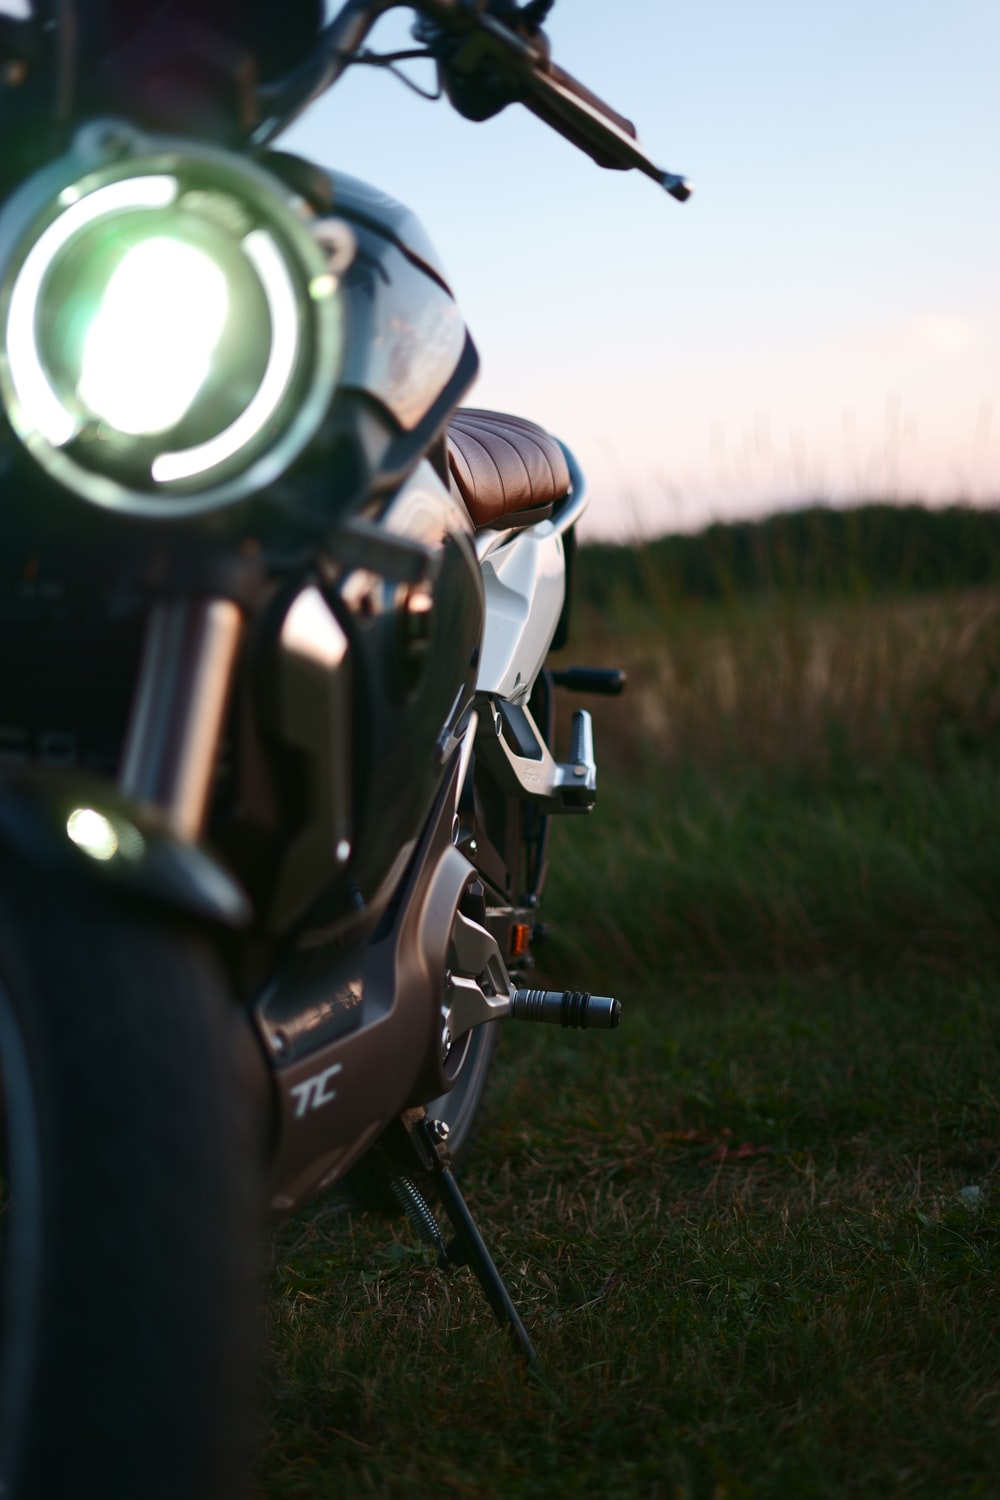 black motorcycle on green grass field during daytime